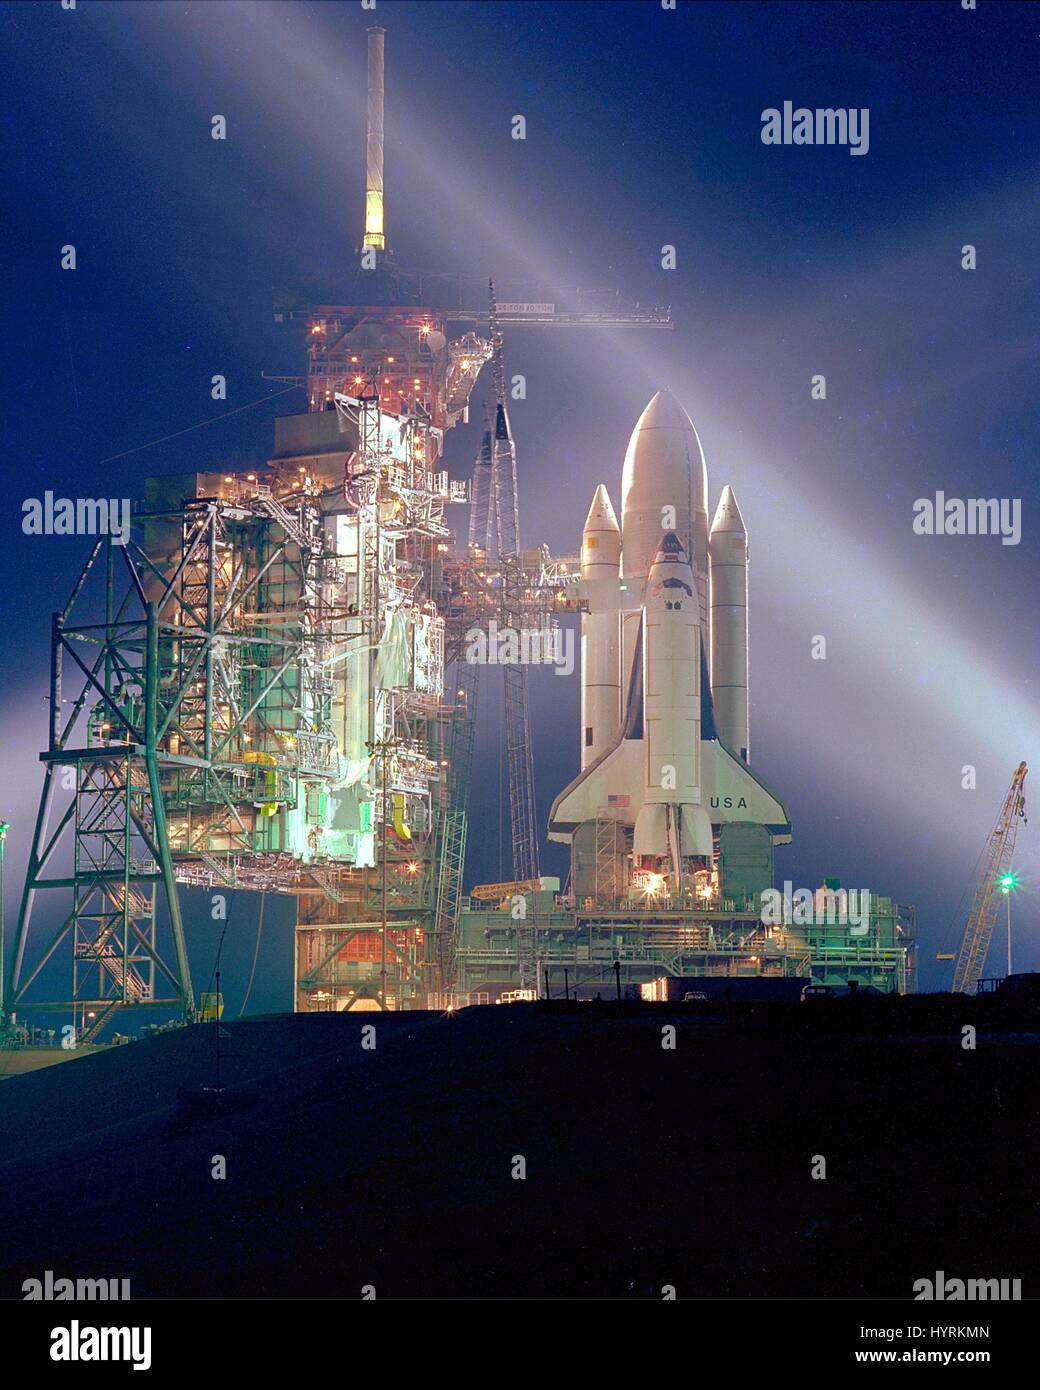 The NASA space shuttle Columbia sits on the Kennedy Space Center Launch Pad 39A at night in preparation for its - Stock Image